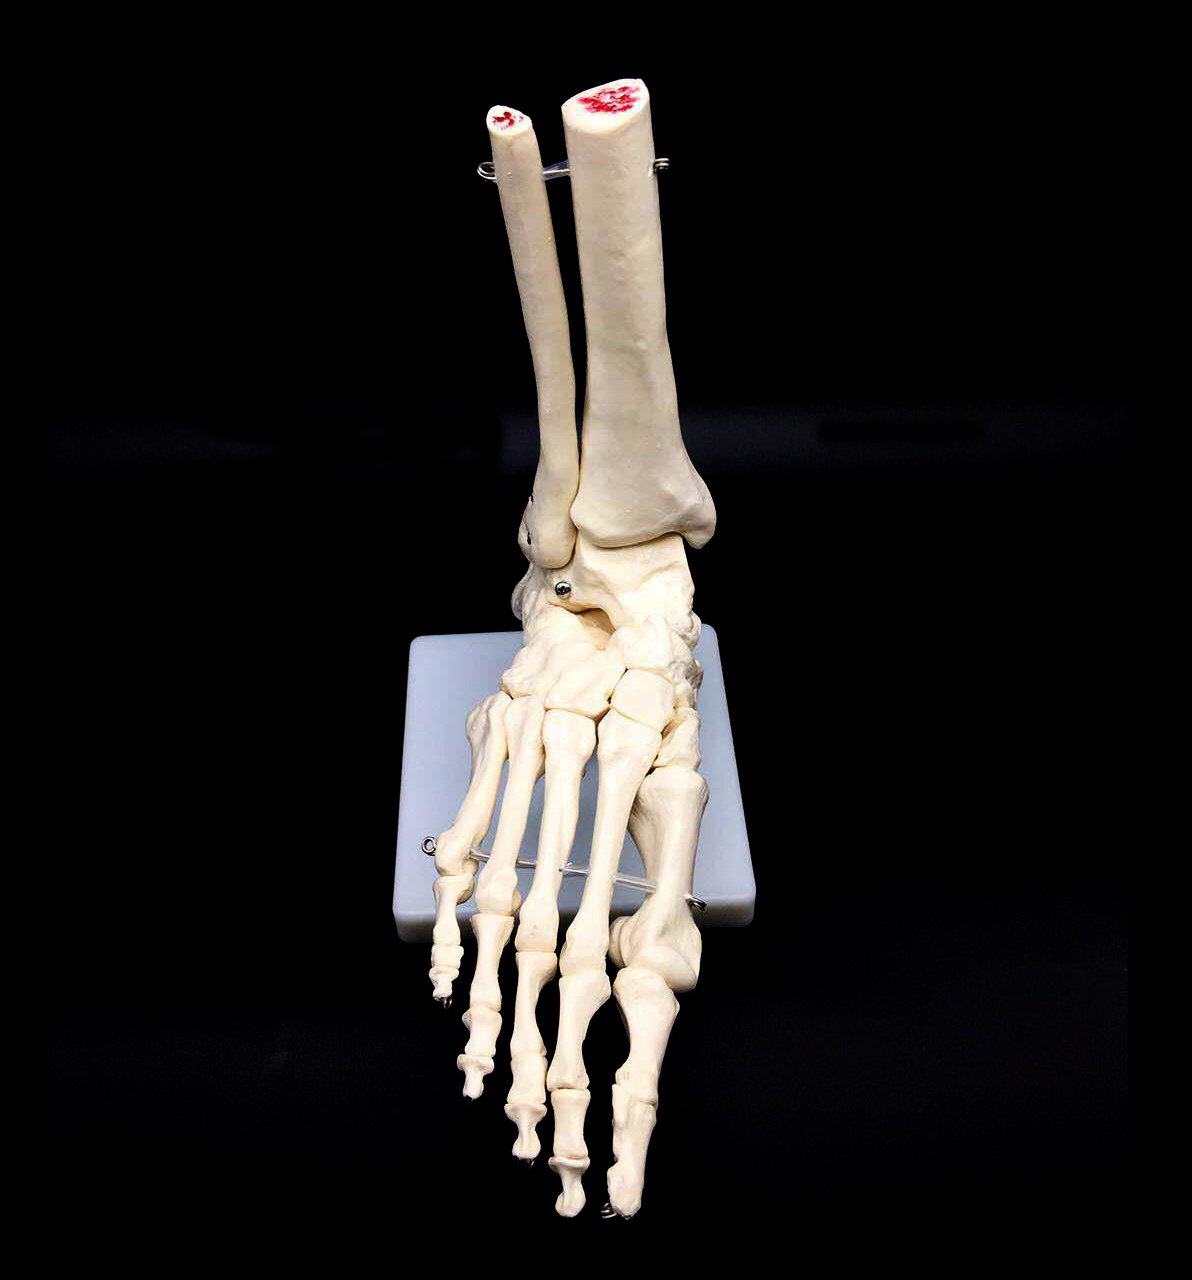 Hand Joint Model with Stand for School Teaching Materials Decoration Anatomical Education Model LBYLYH Life-Size Human Skeleton Foot Ankle